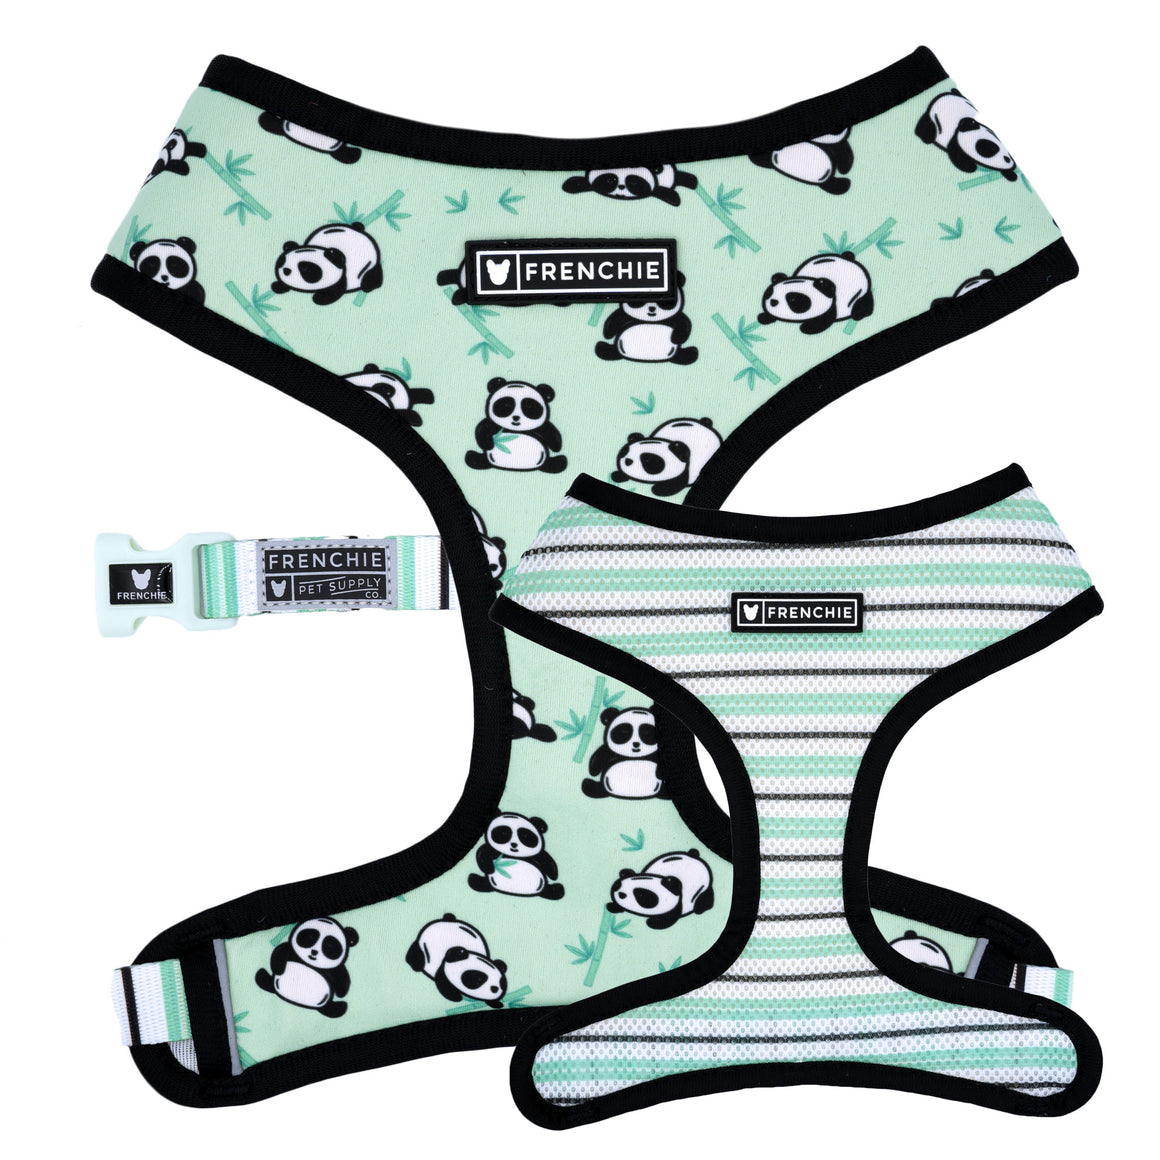 Frenchie Duo Reversible Harness - Green Panda